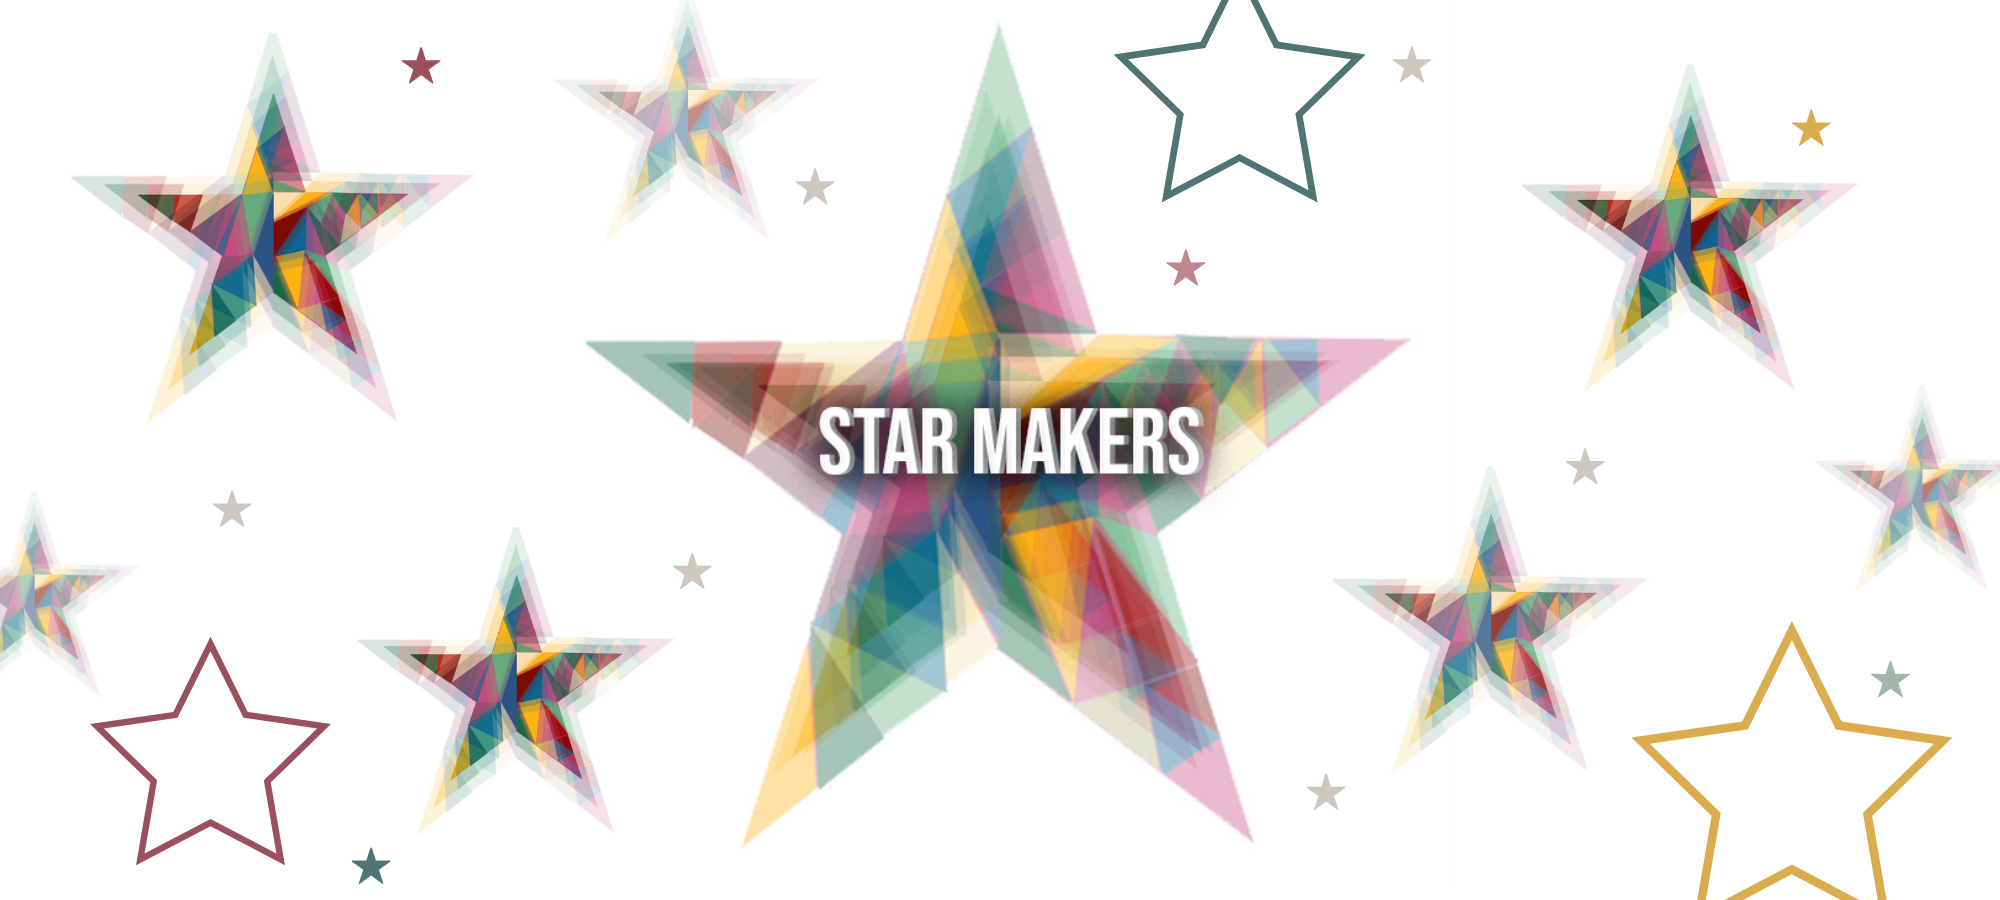 Star Makers